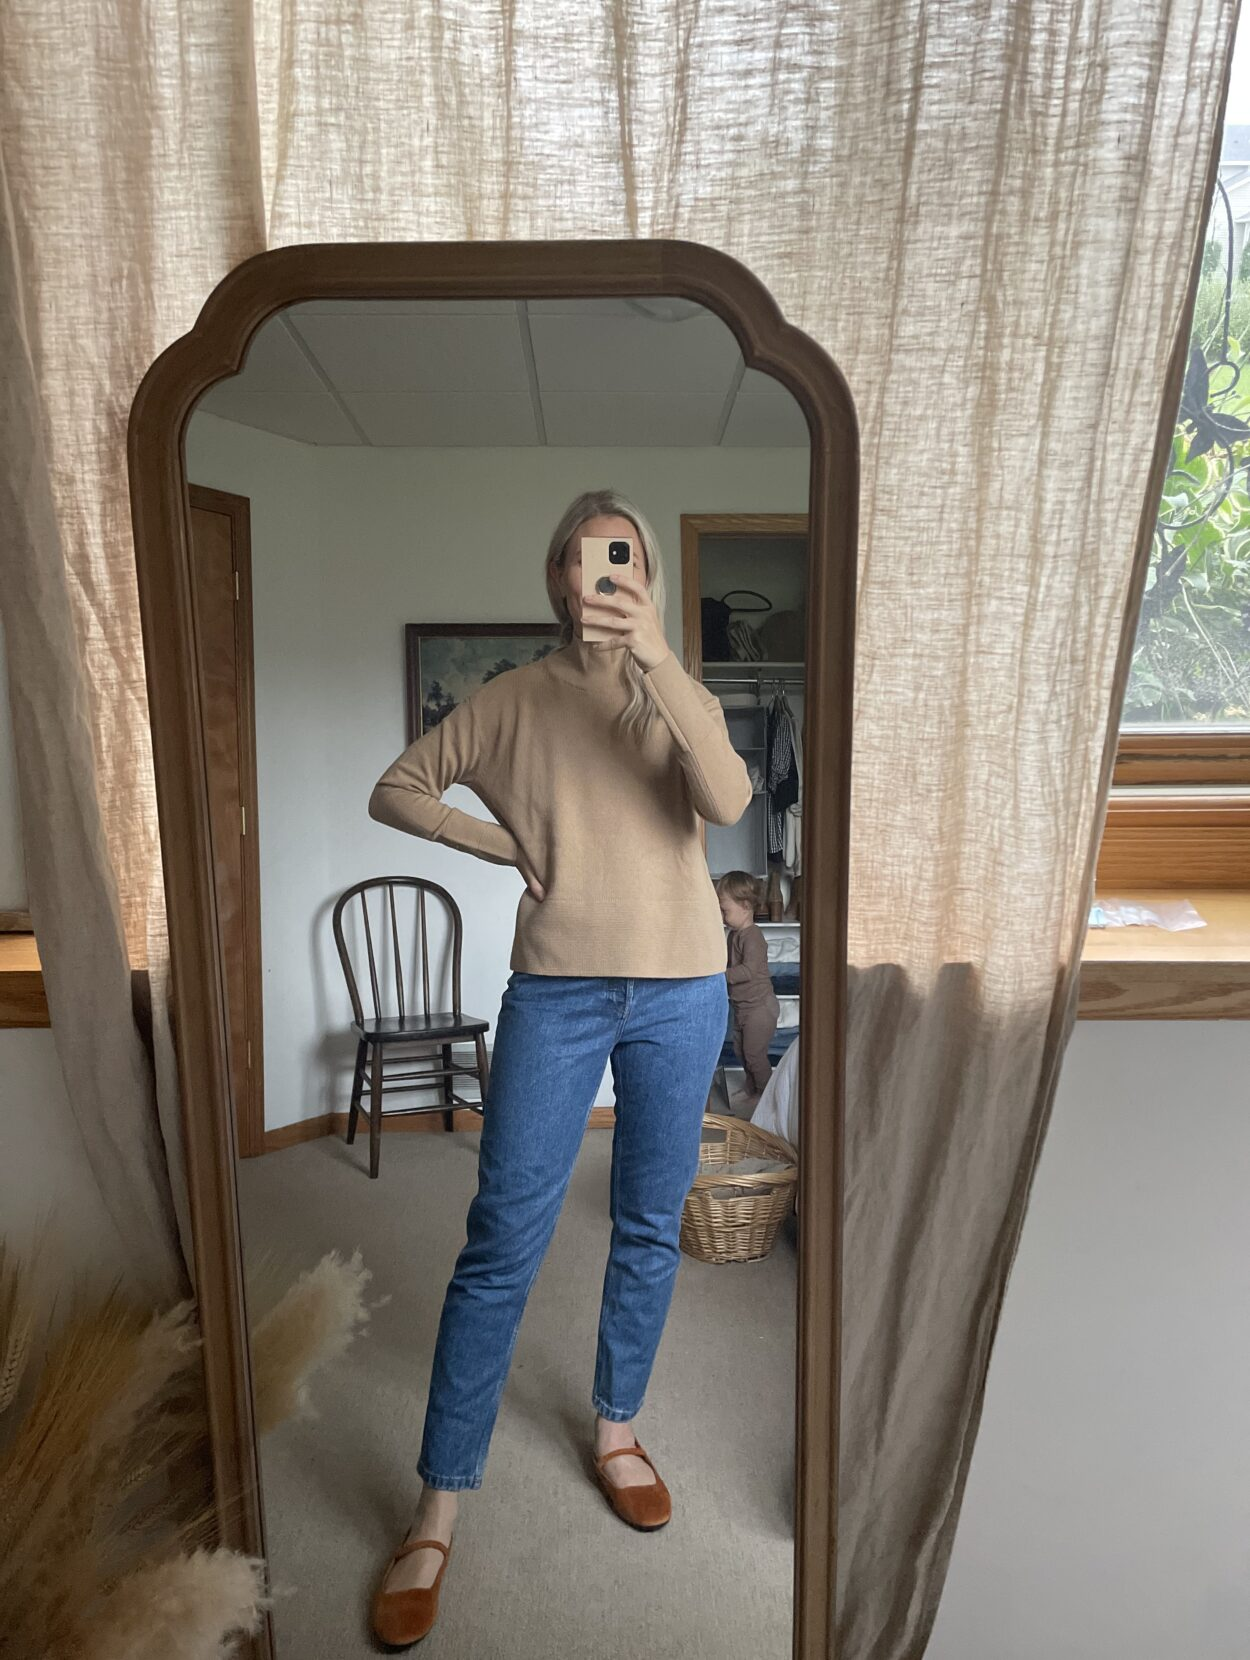 Karin Emily wears a cashmere camel colored turtleneck from Everlane